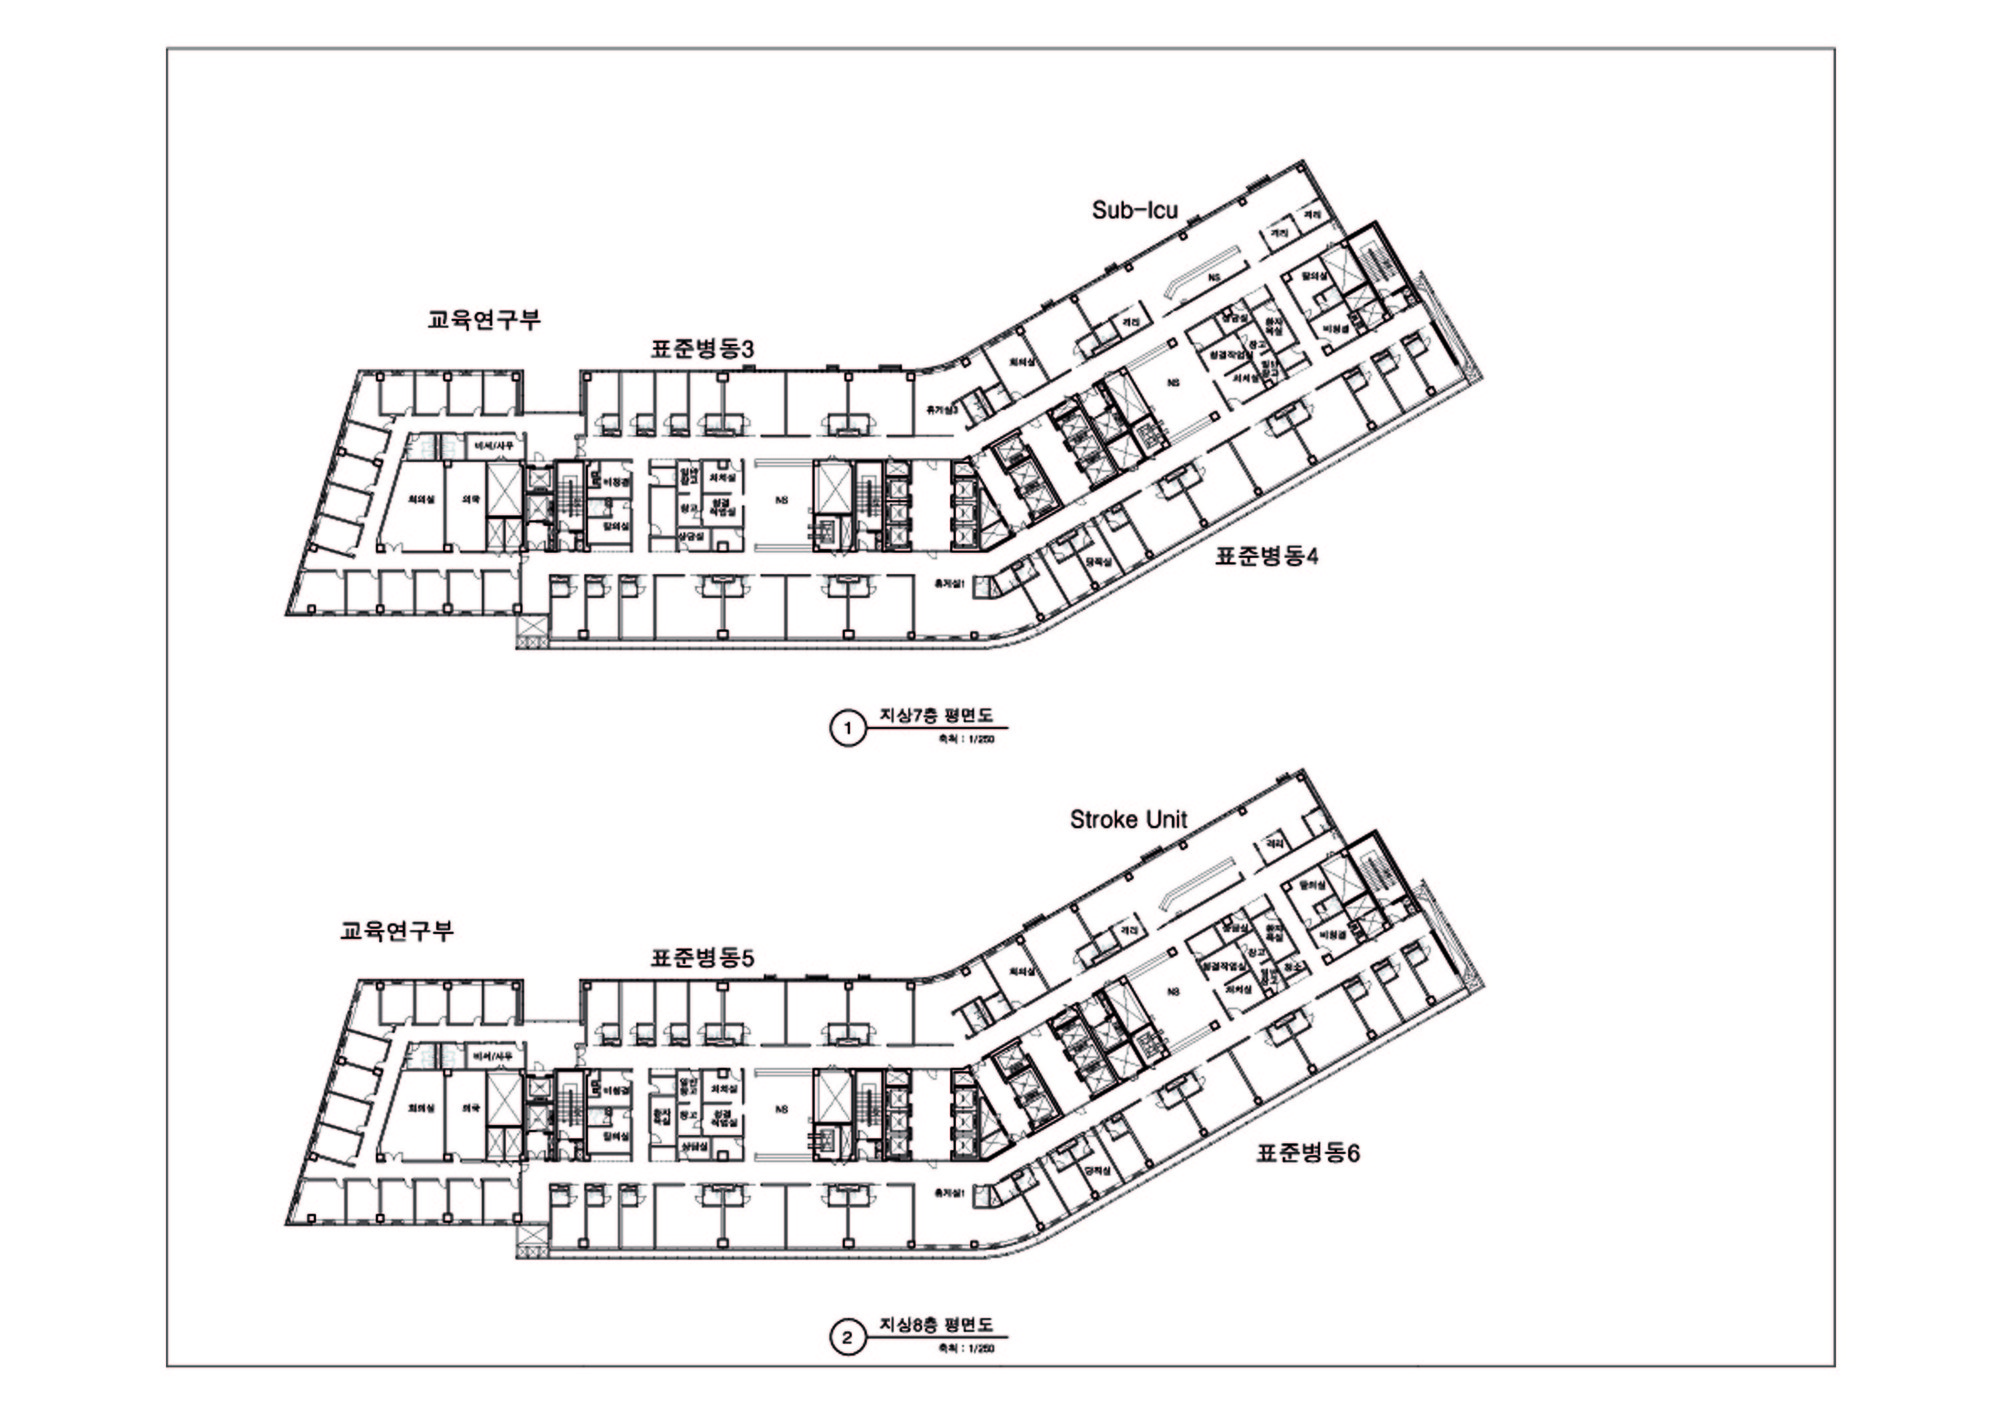 Housing Floor Plans Gallery Of Bundang Seoul National University Hospital